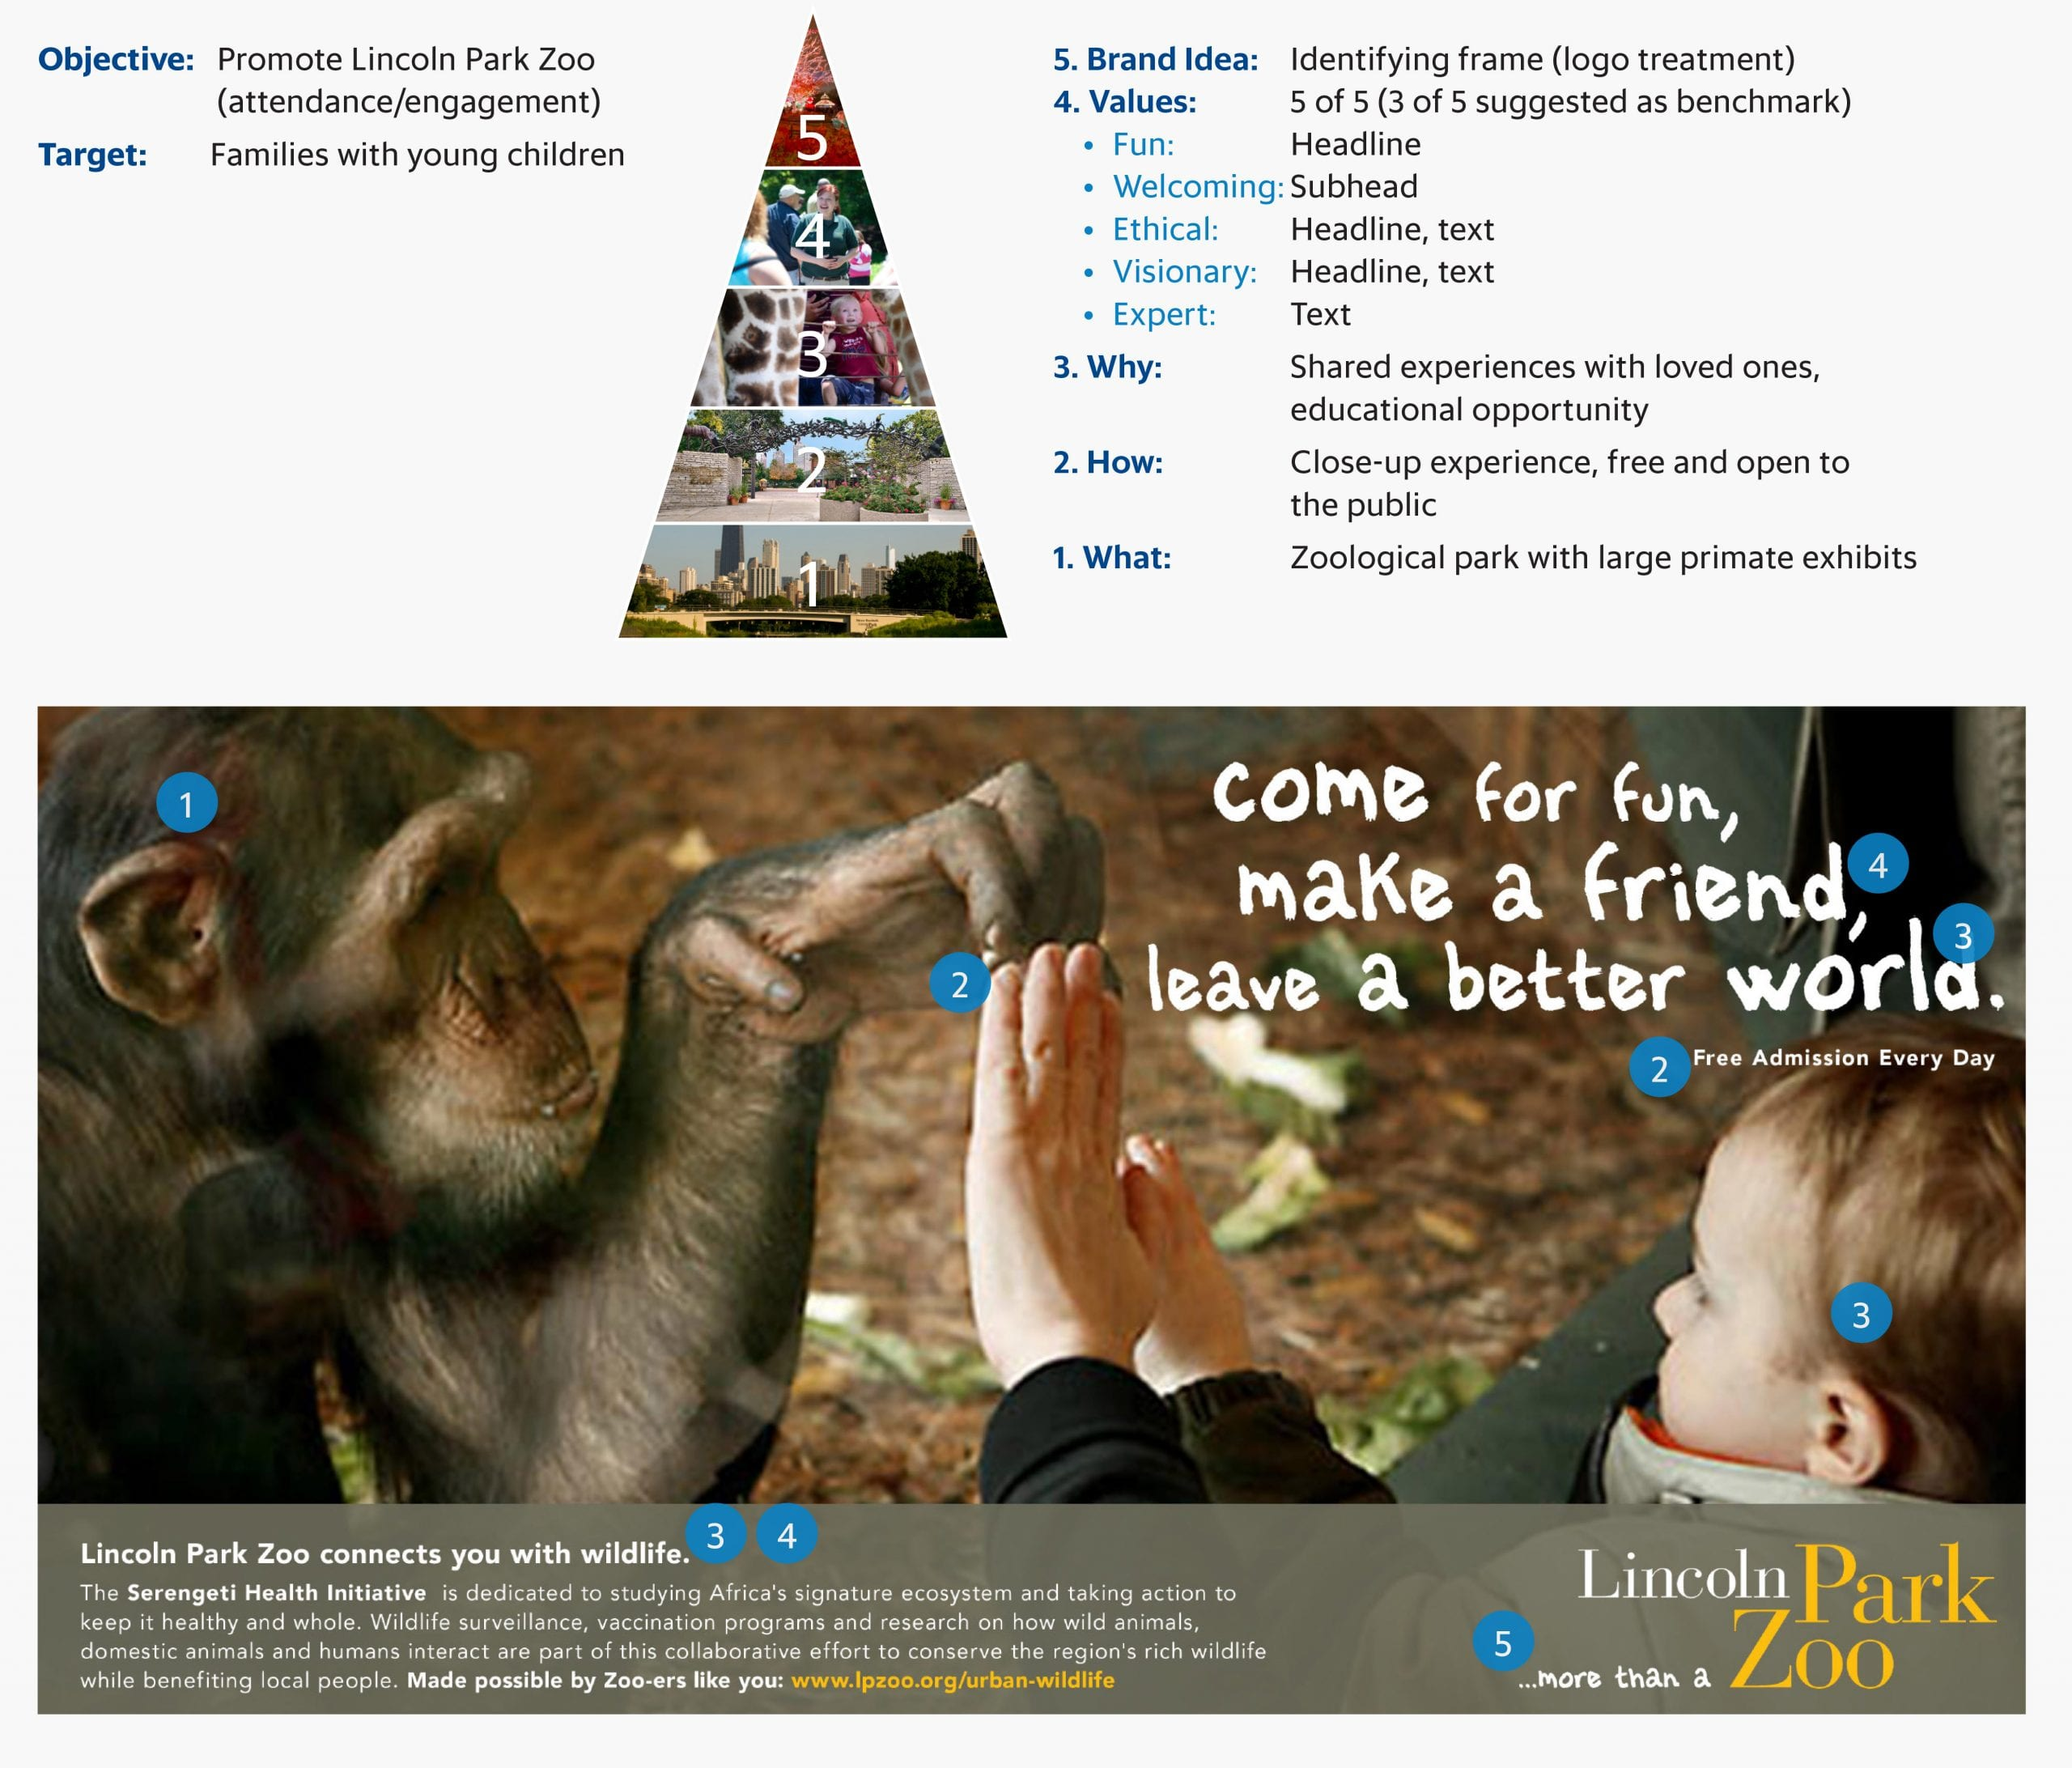 http://Lincoln%20Park%20Zoo%20nonprofit%20advertising